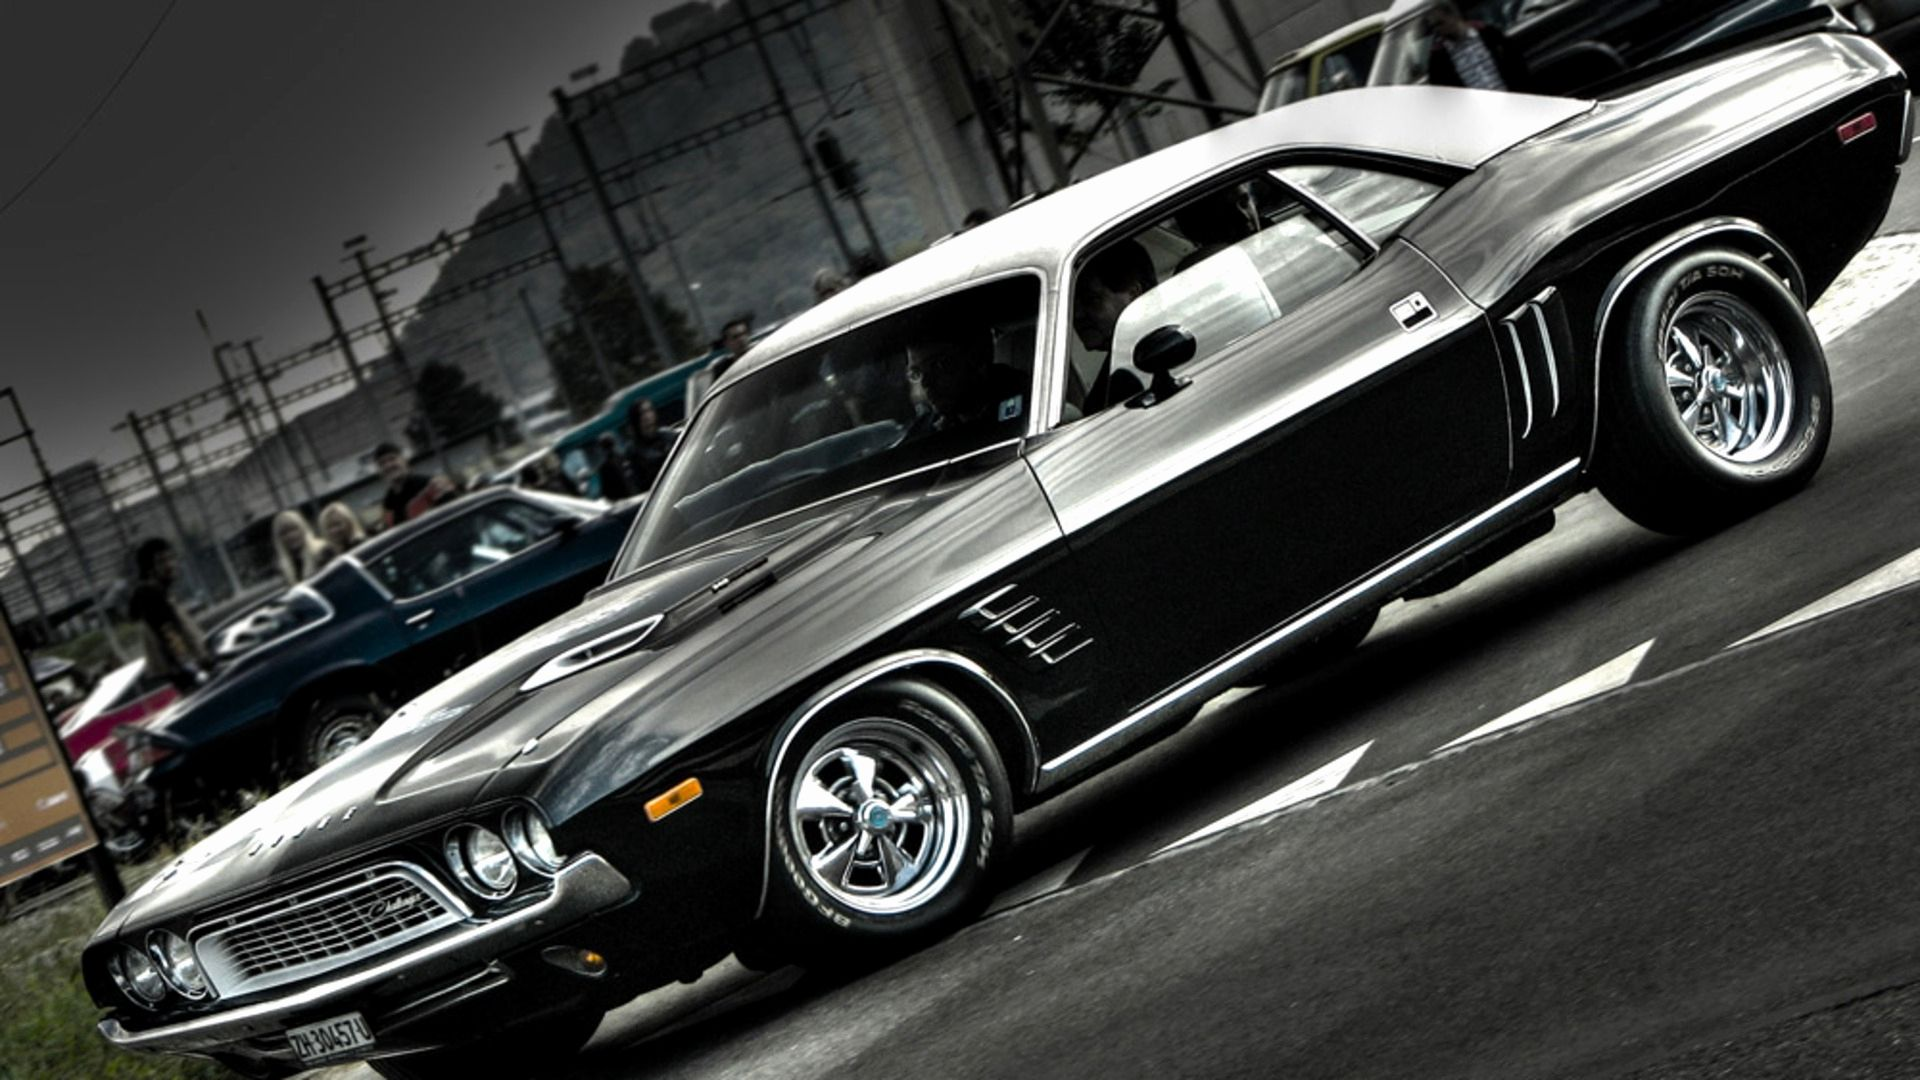 37 Best Free American Muscle Car Wallpapers Wallpaperaccess